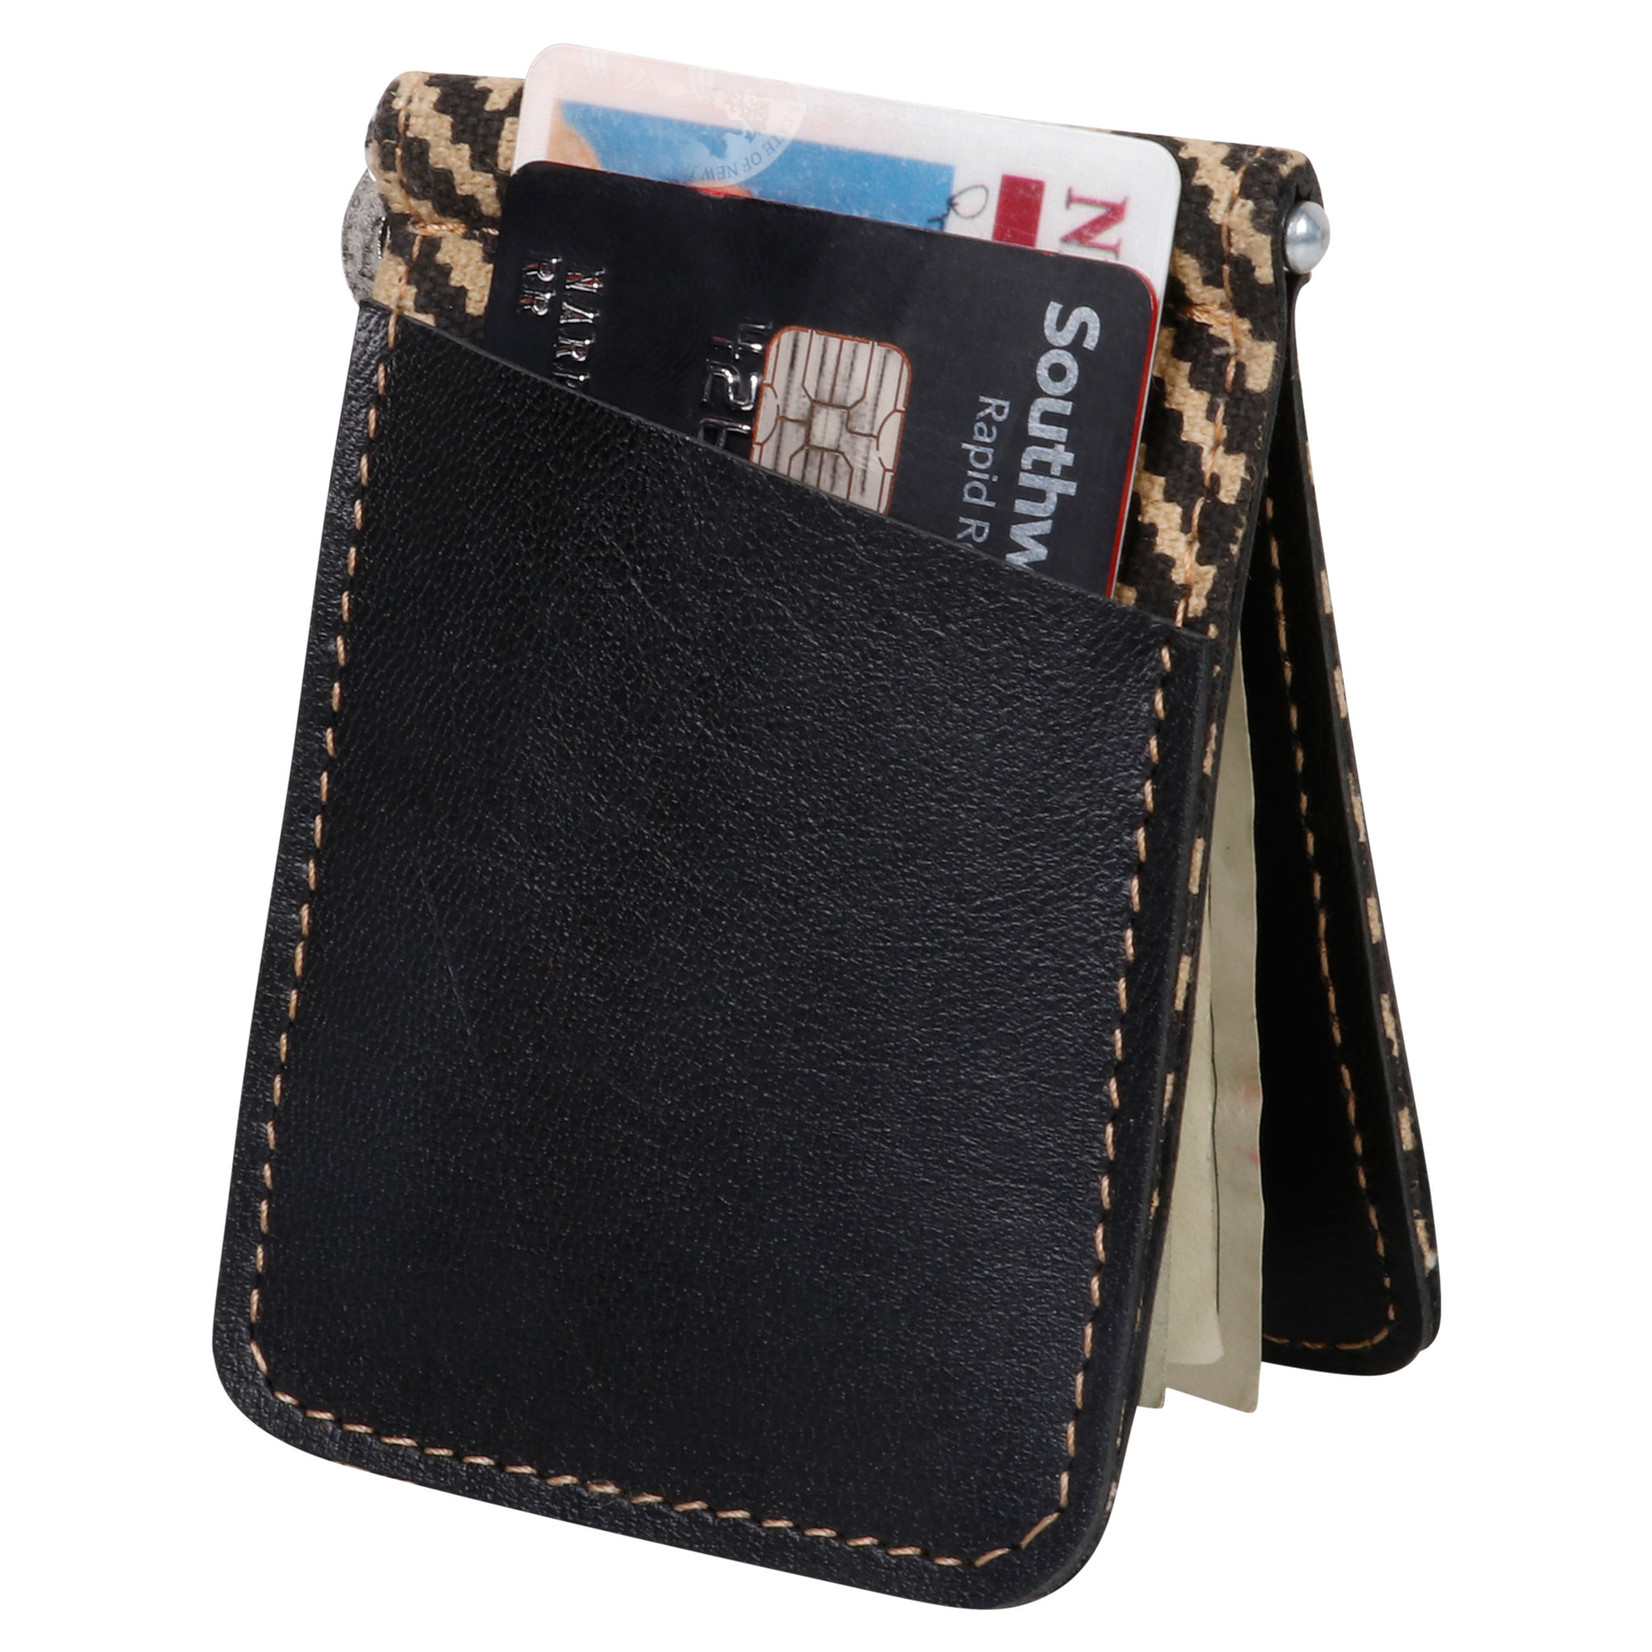 VG1027-P7 RFID Money Clip